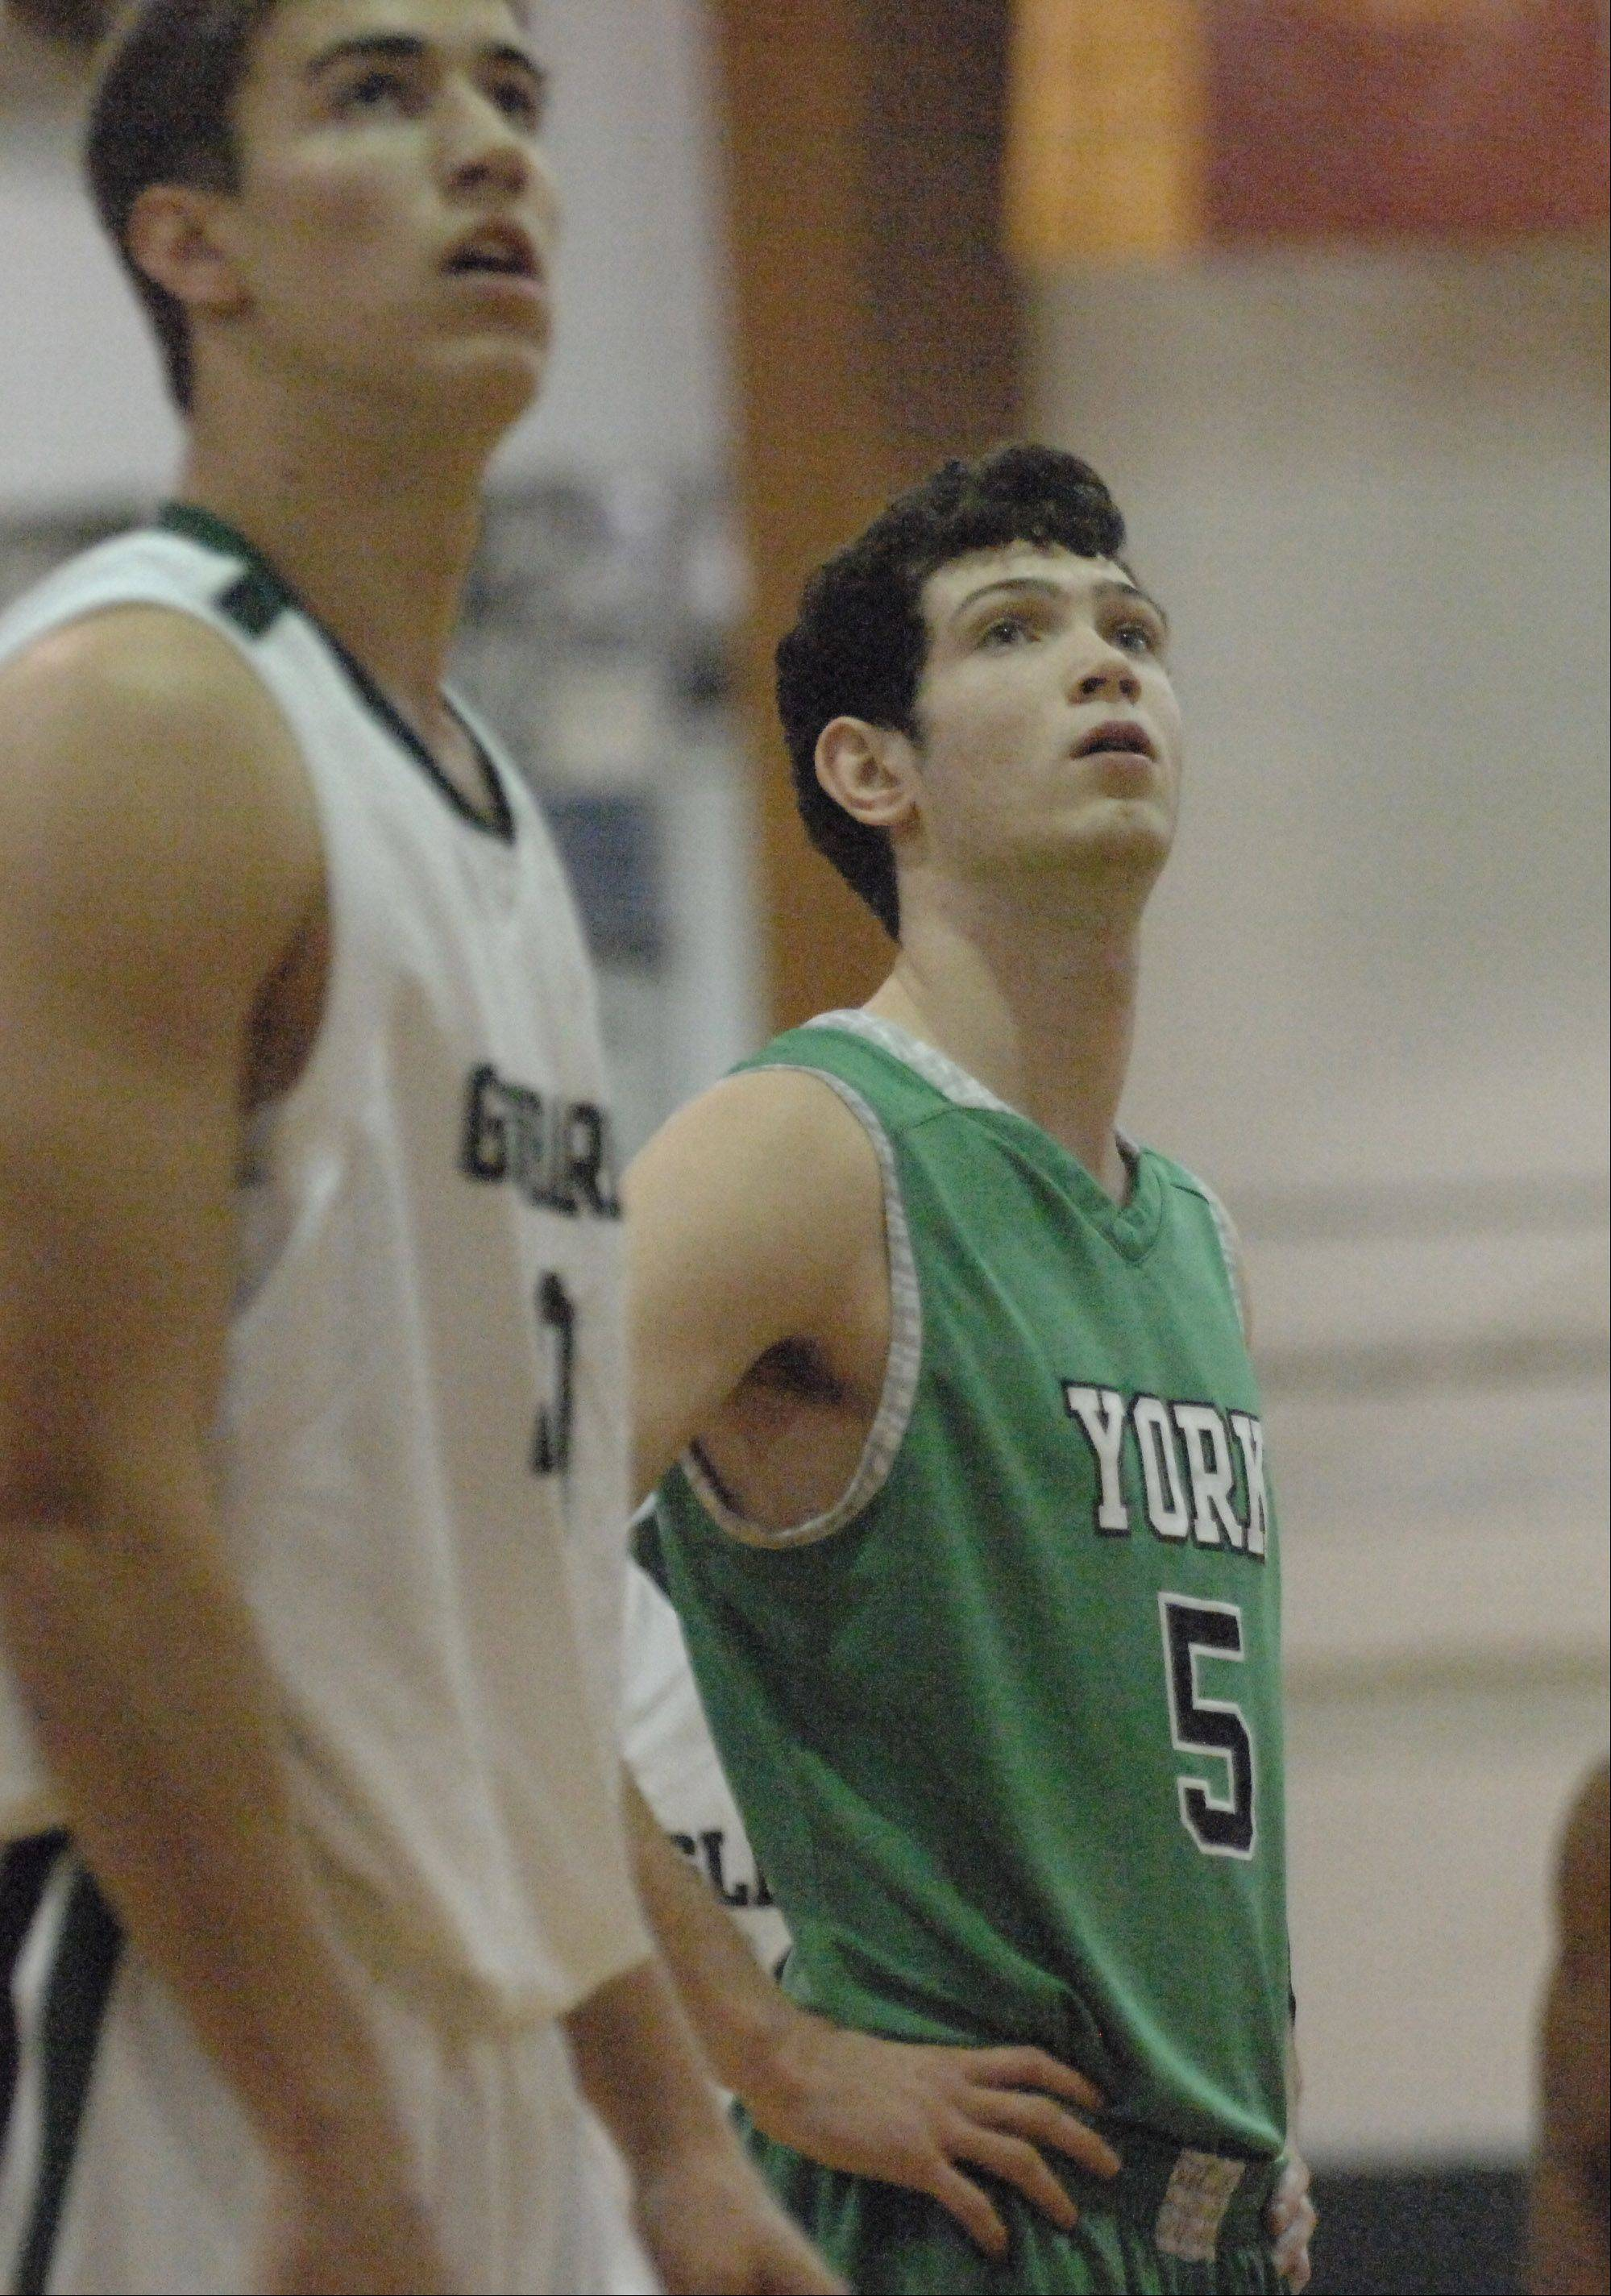 David Cohn of York takes part in the York at Glenbard West boys basketball game Friday.